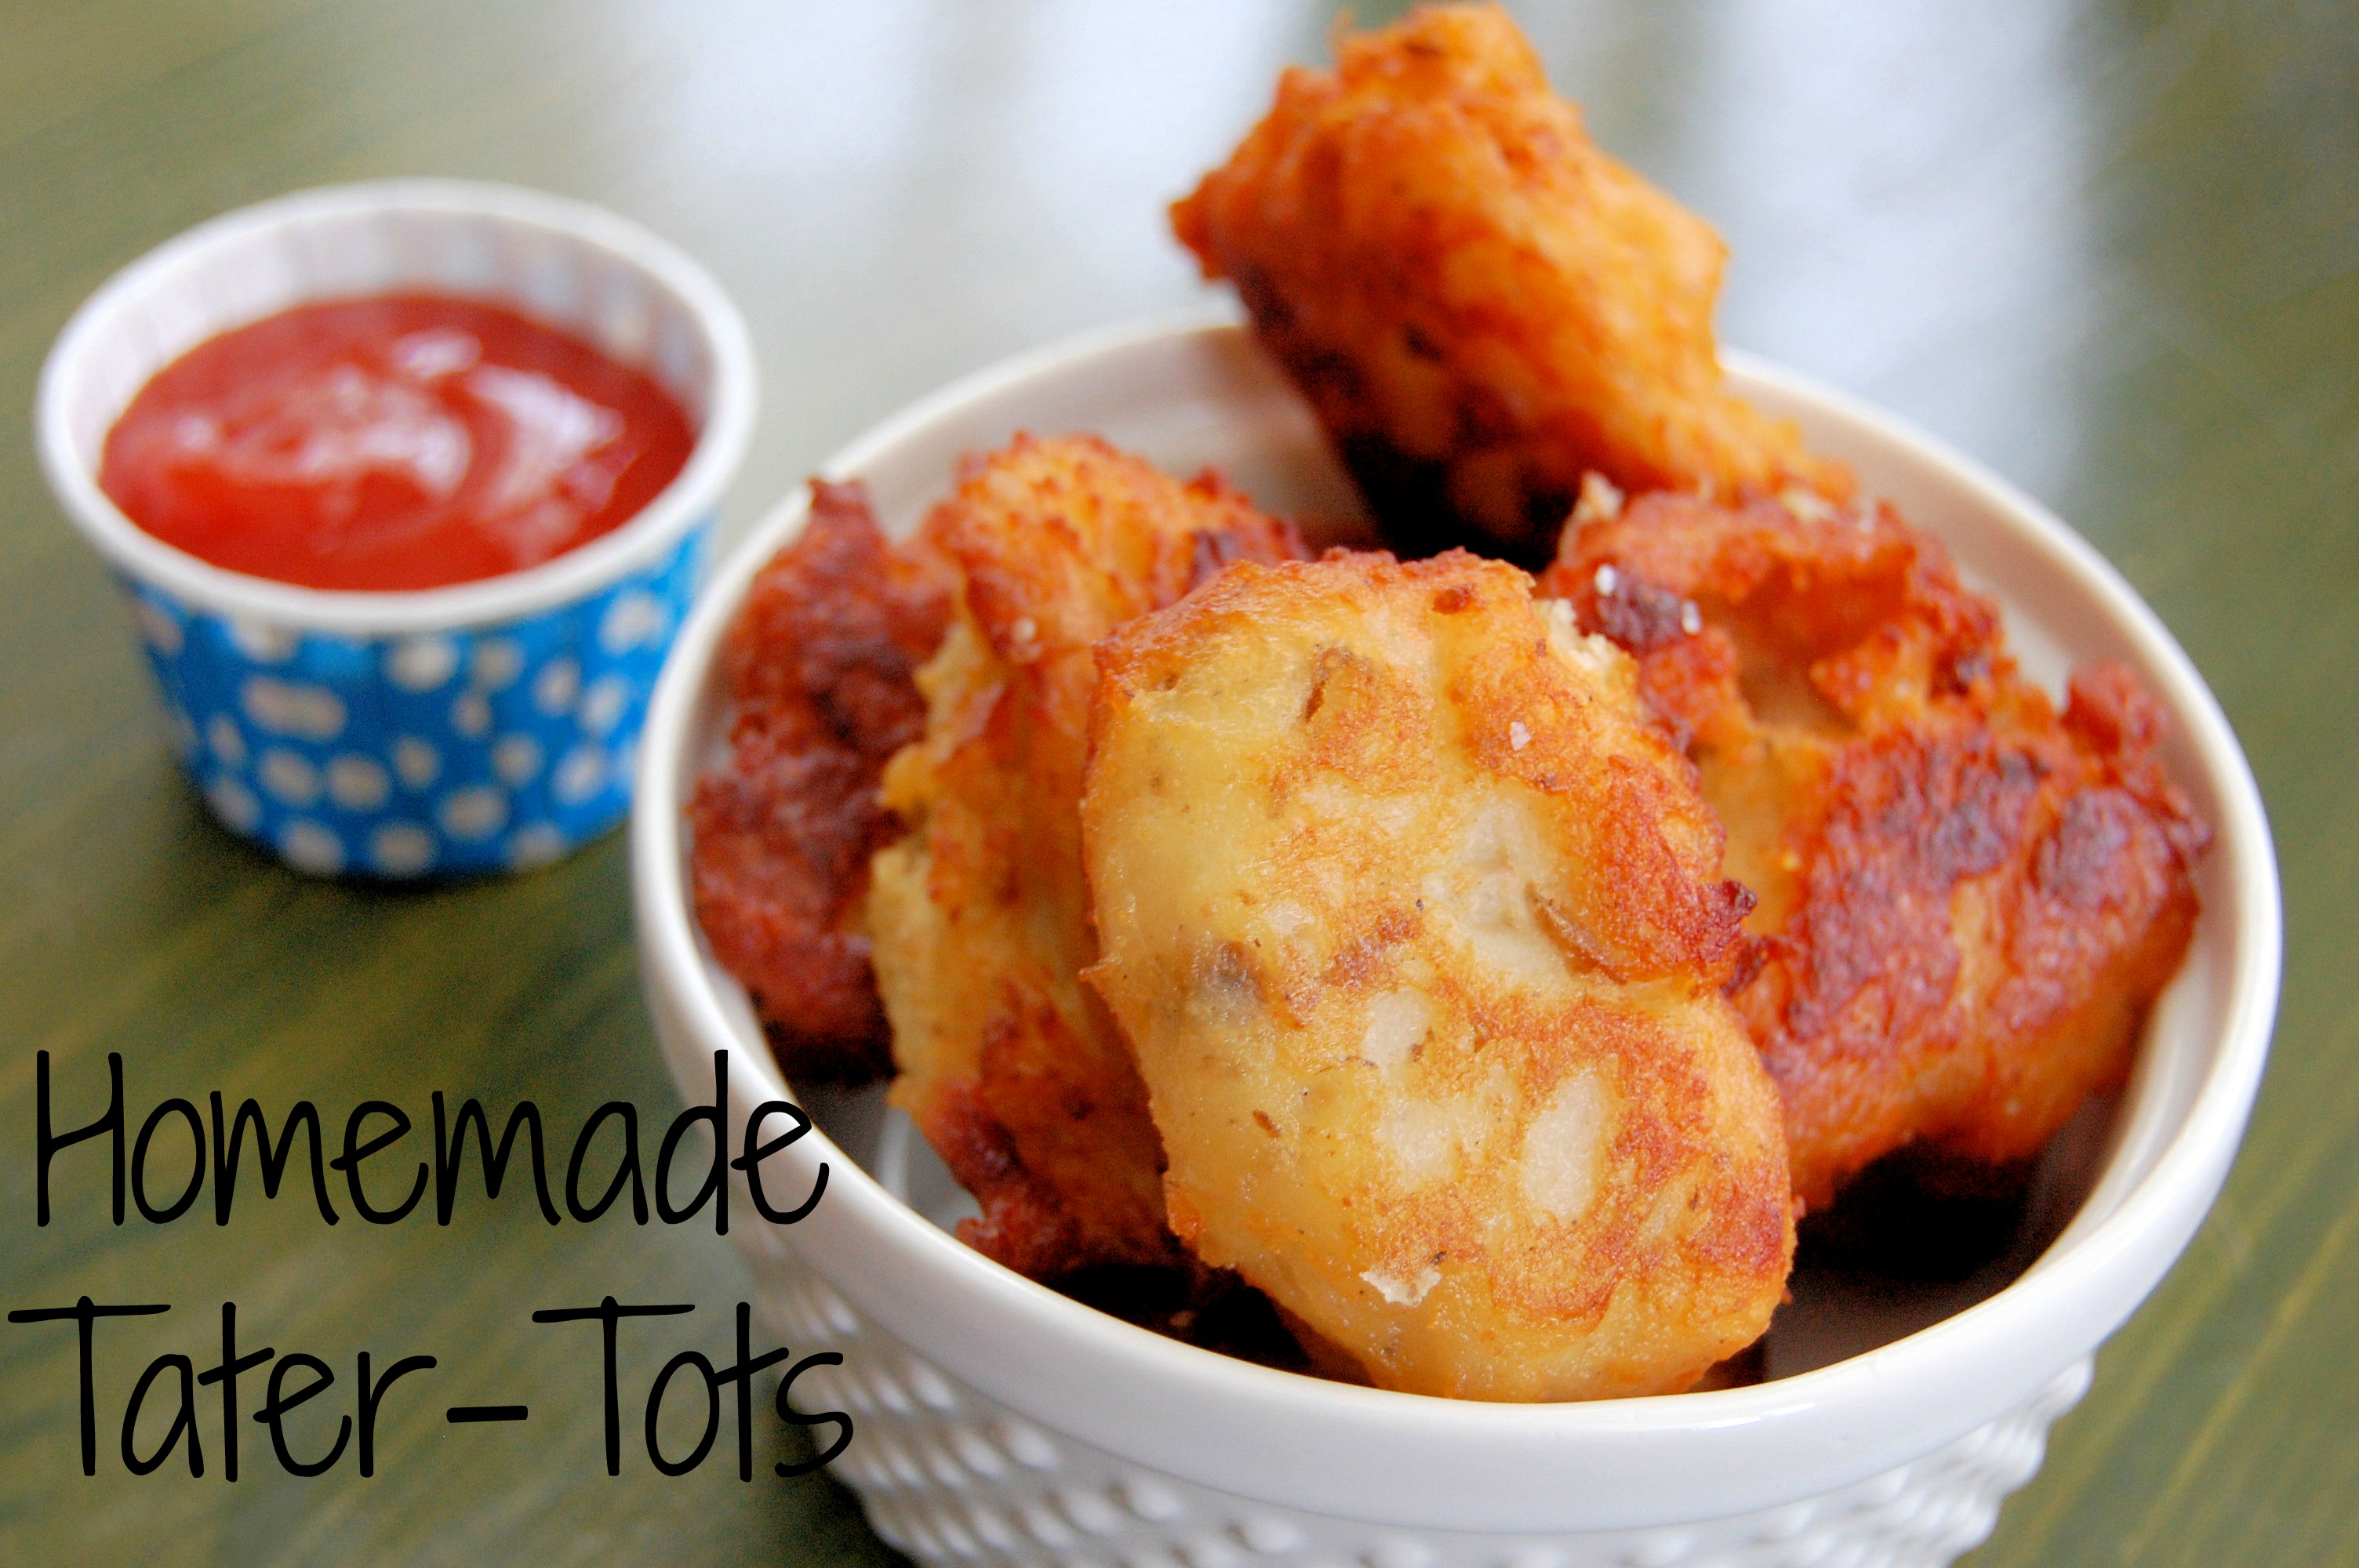 homemade-tater-tots-yes-you-can-do-it